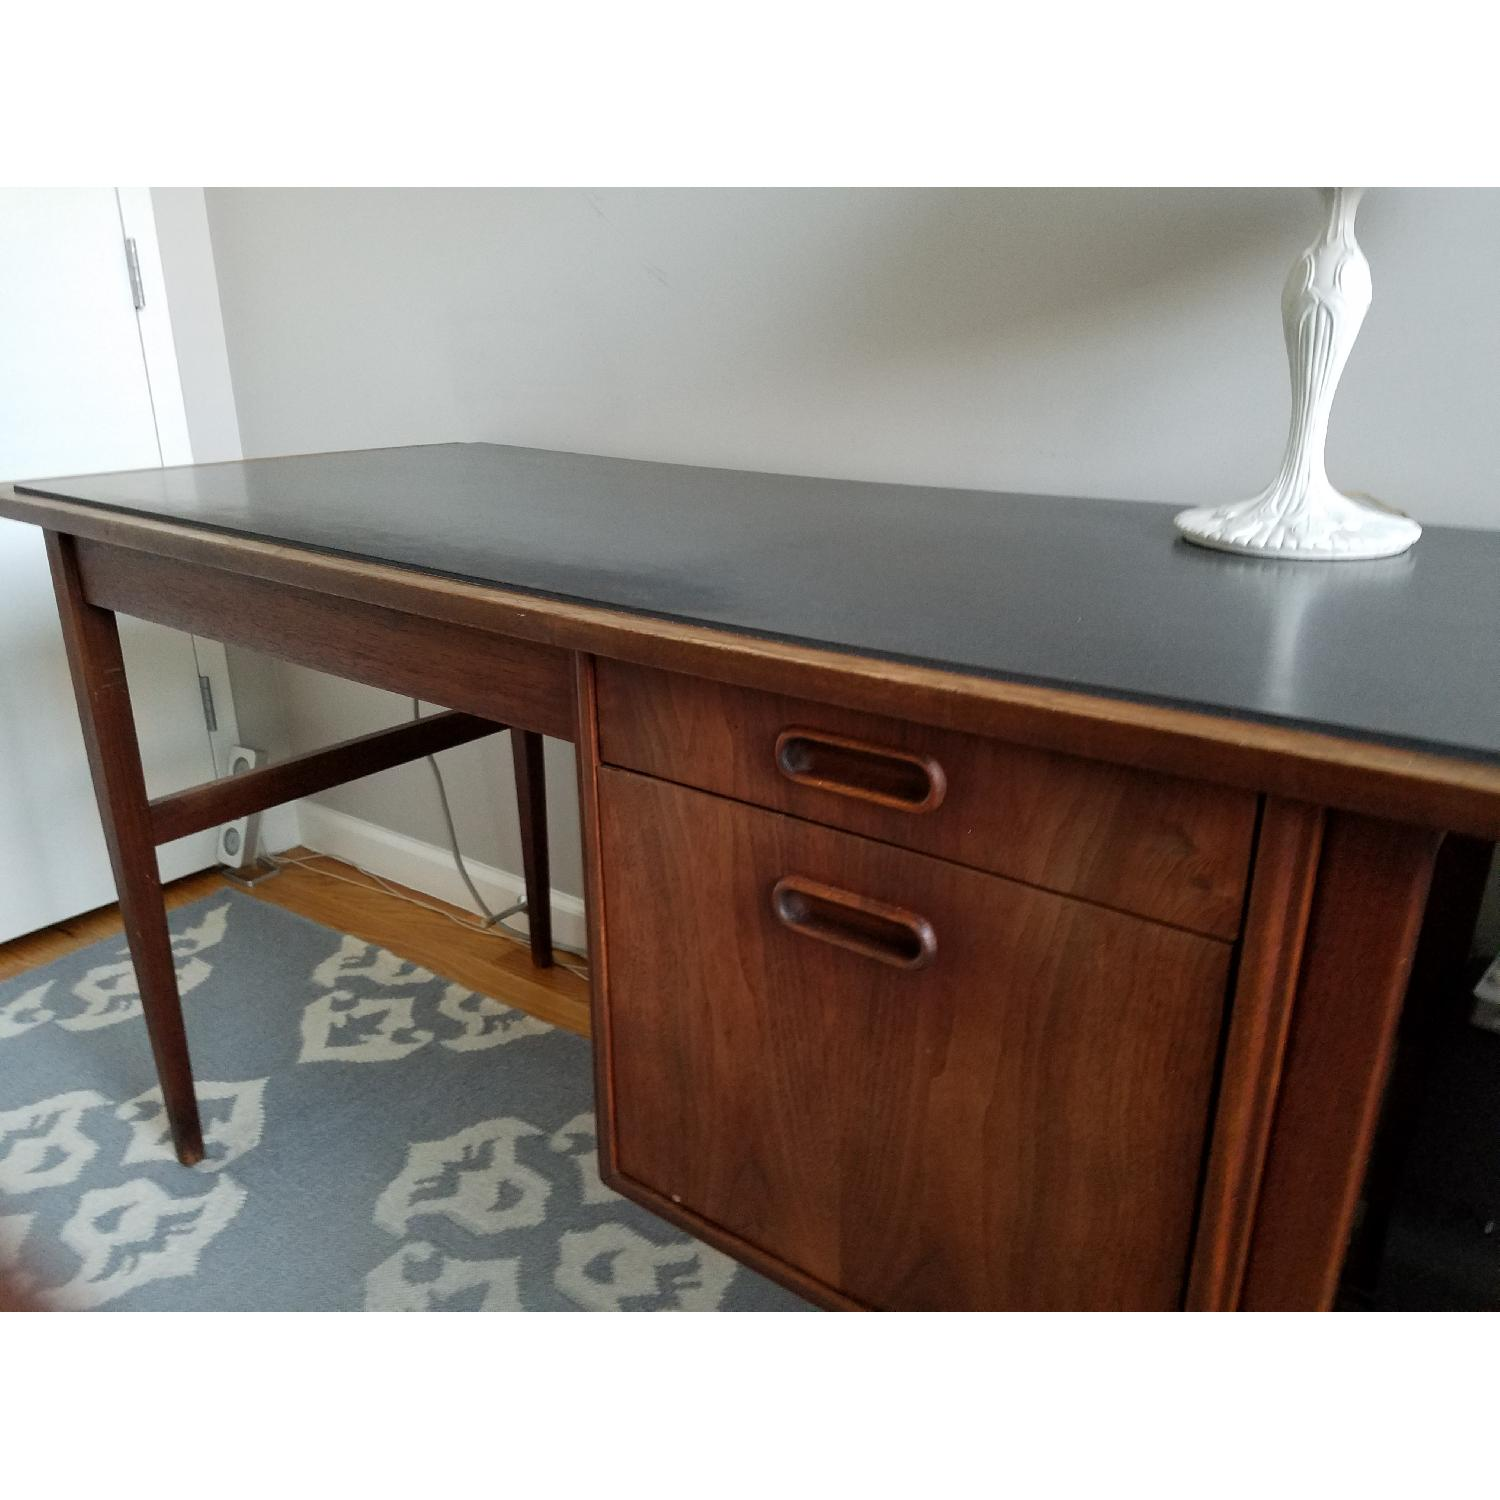 Mid Century Danish Style Brown Wood Desk w/ Dark Marble Top-4